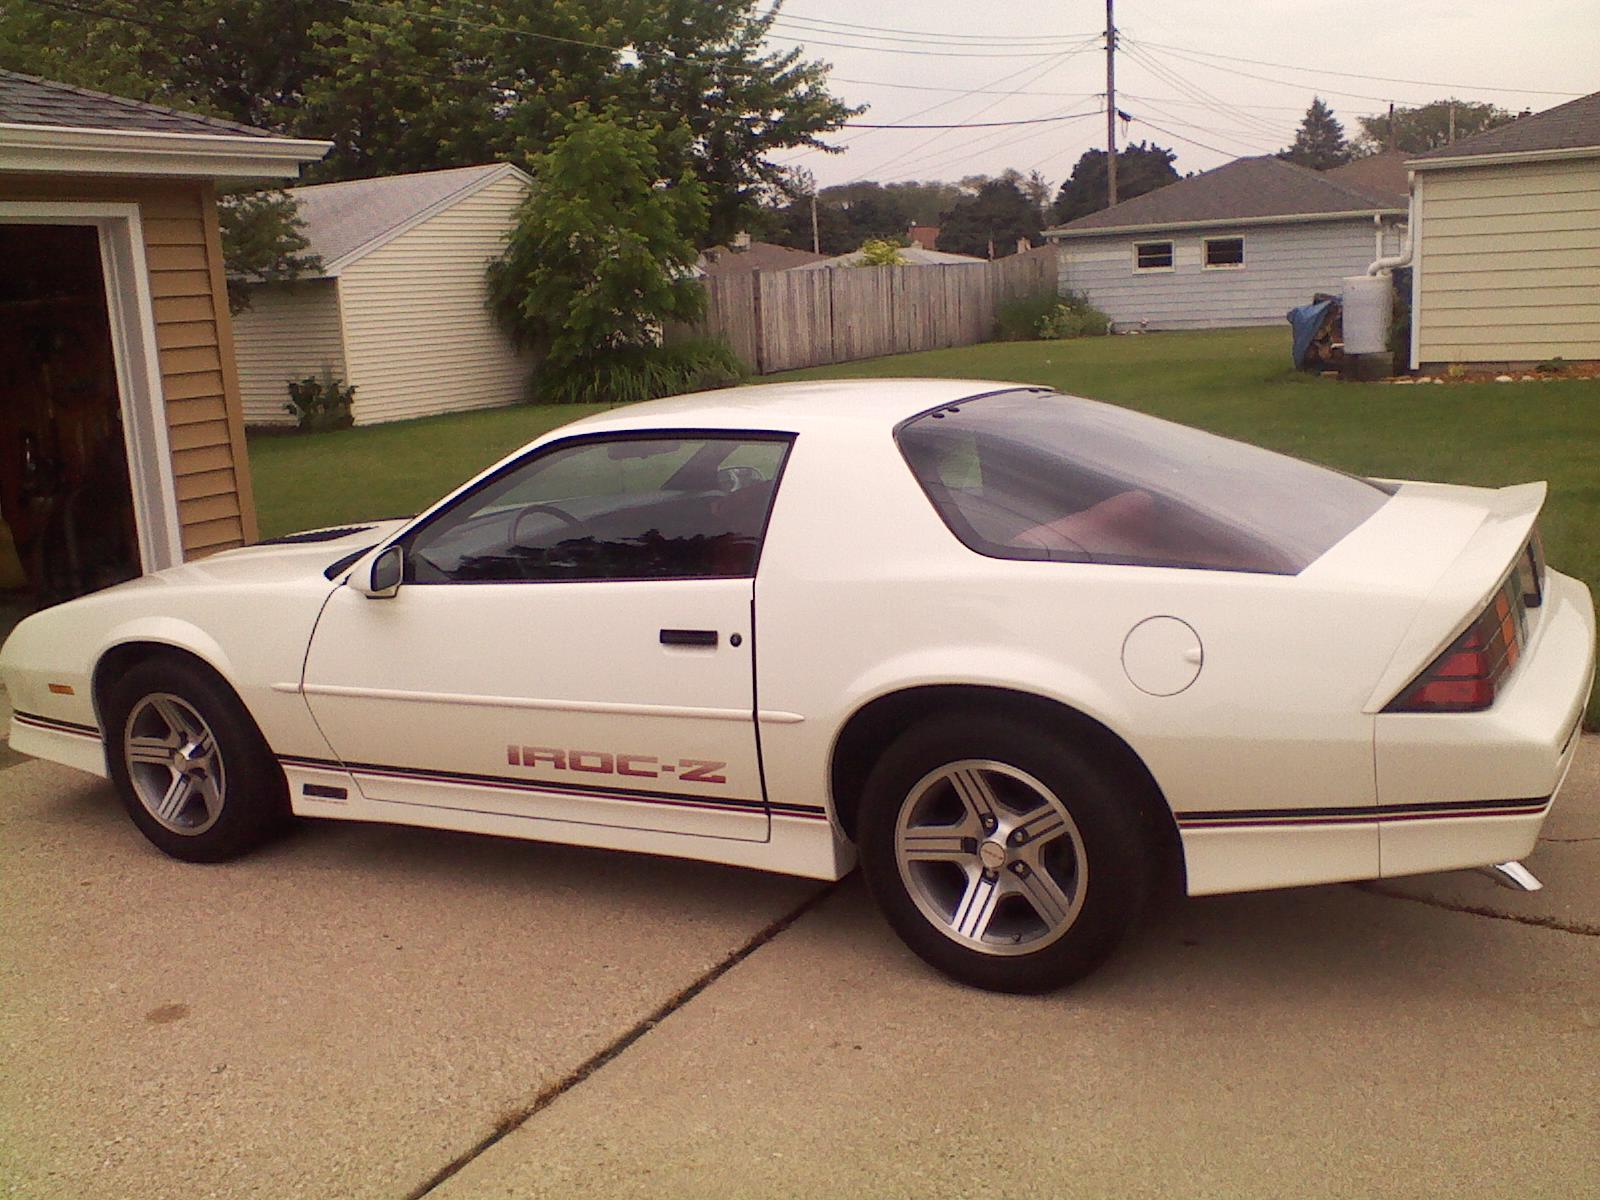 hight resolution of  1988 iroc z manual 5 speed for sale left side white iroc